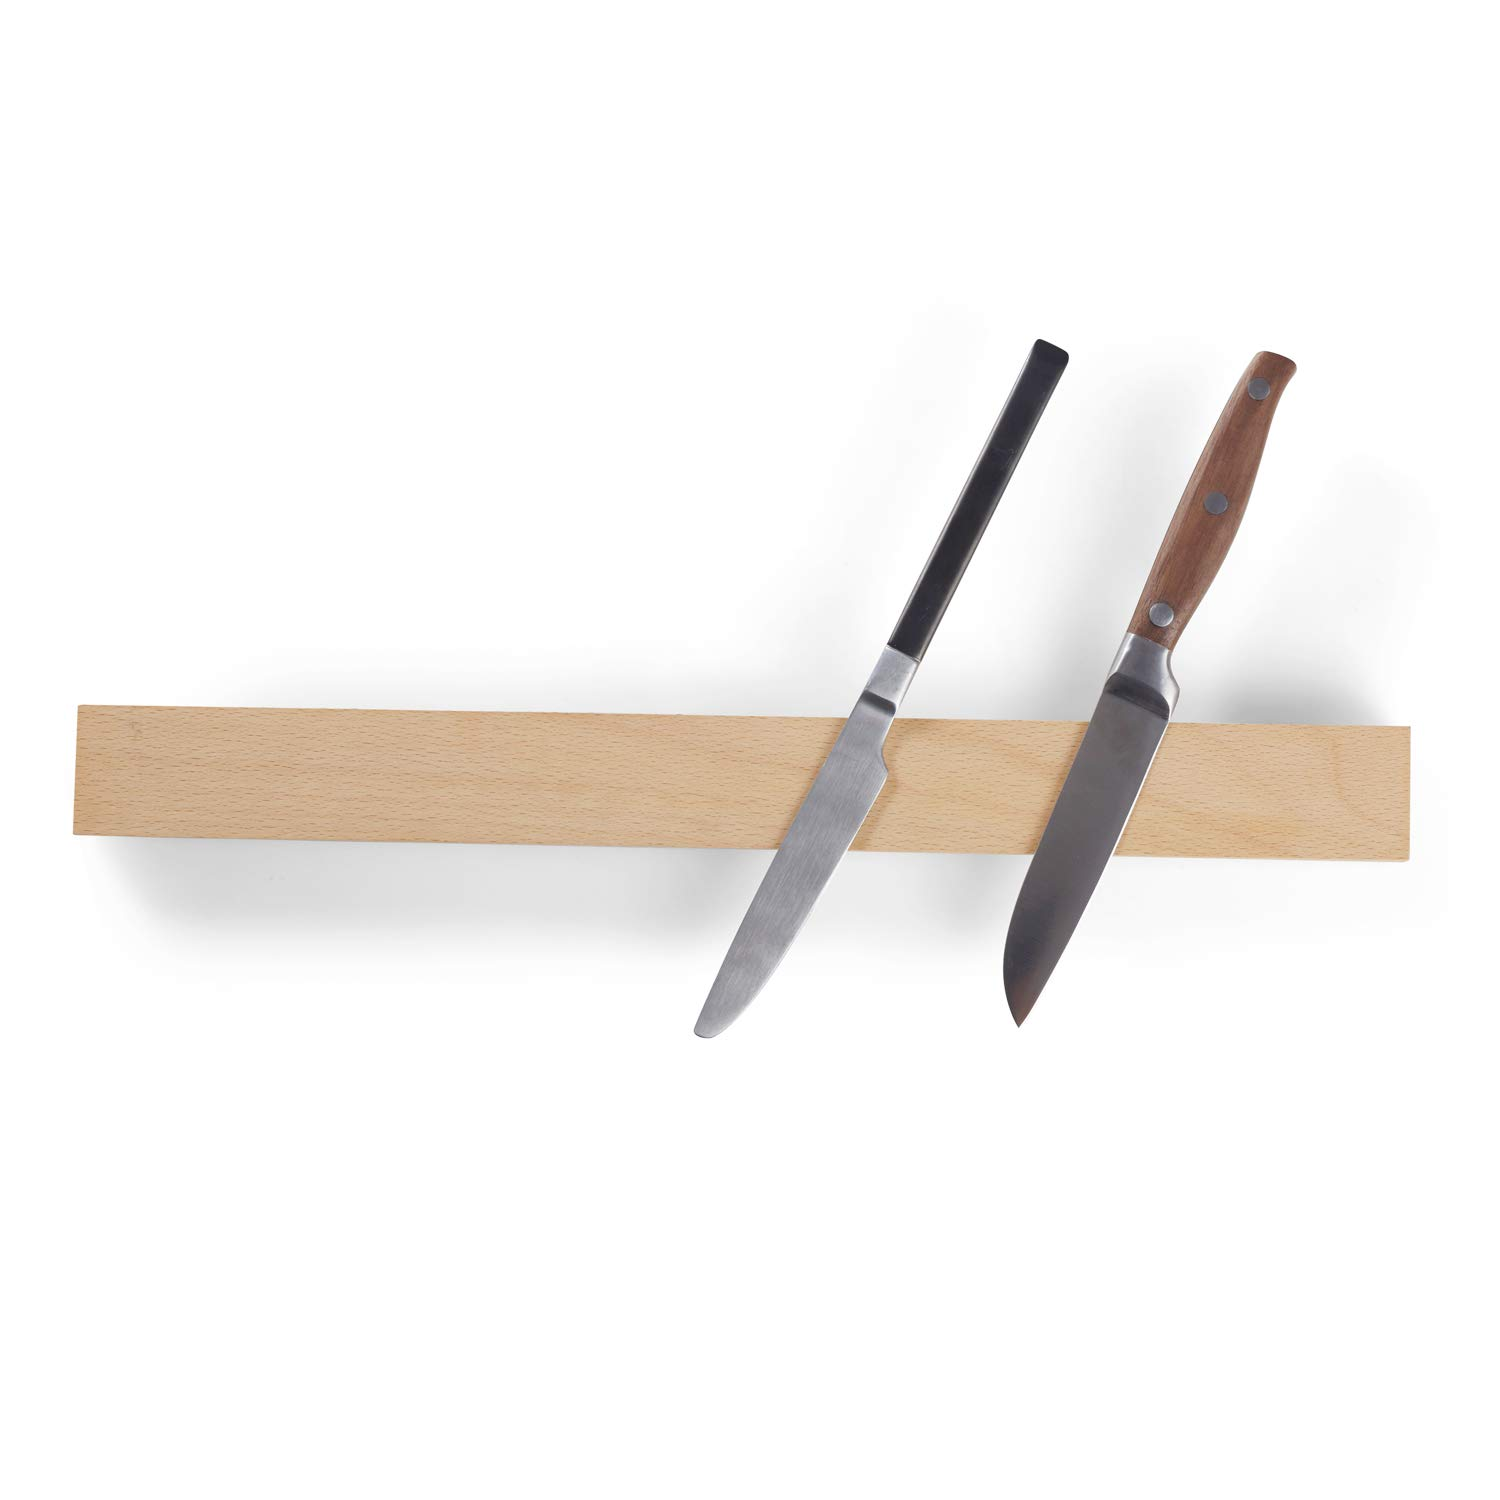 Beechwood Magnetic Knife Strip Adhensive Mount, 15 Inch Wooden Knife Holder Rack, Great for Organizing Kitchen or Mental Tools by FengChuang